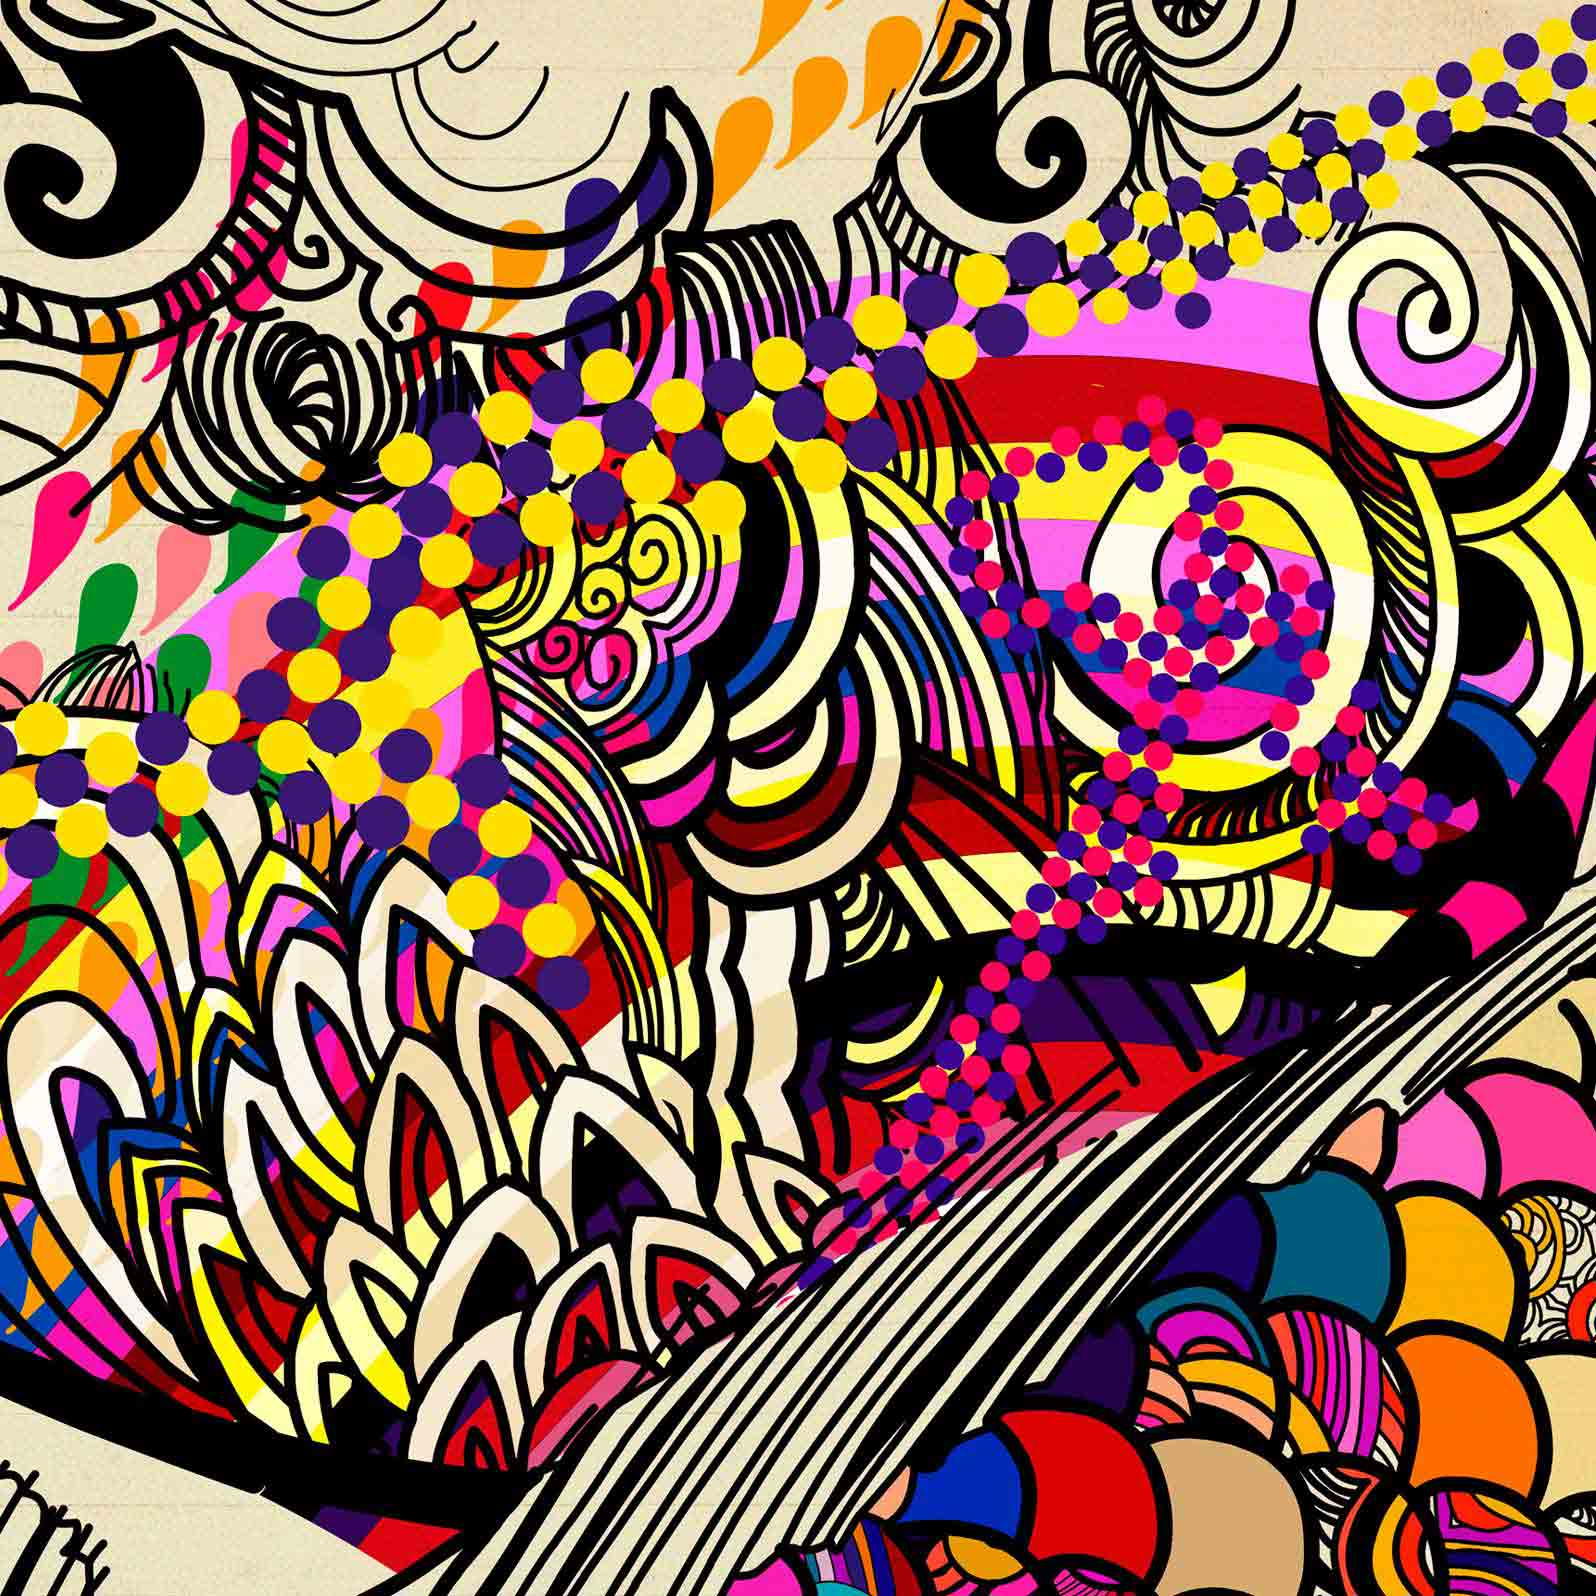 Anca Stefanescu | Colour Alchemy Digital Art, Computer Art on Canvas